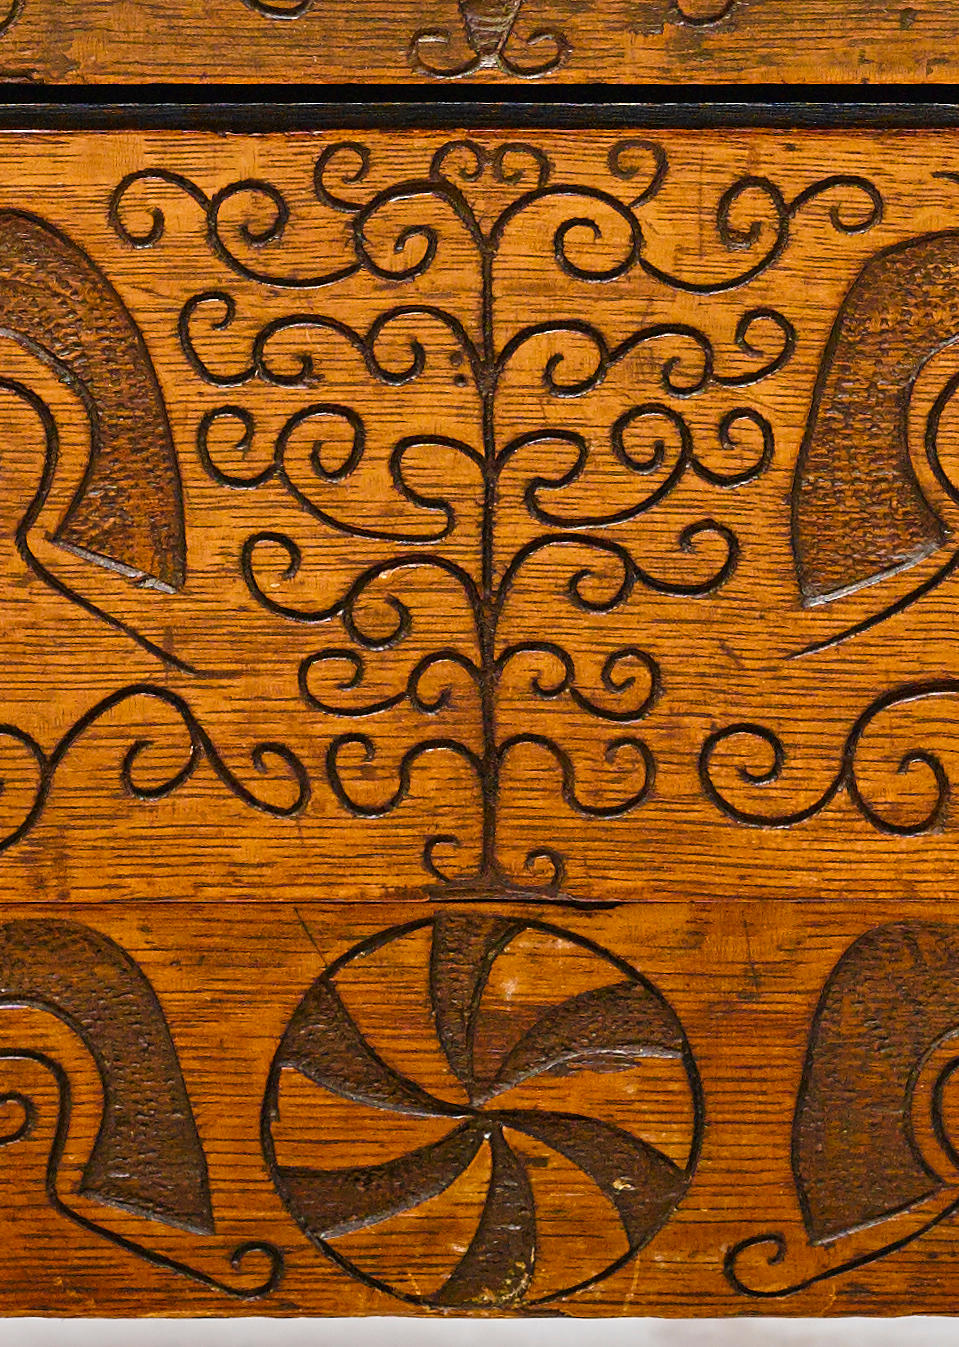 """The extraordinary Hovey-Wadsworth Family joined oak and pine """"Hadley"""" chest with single drawer Massachusetts early 18th century"""